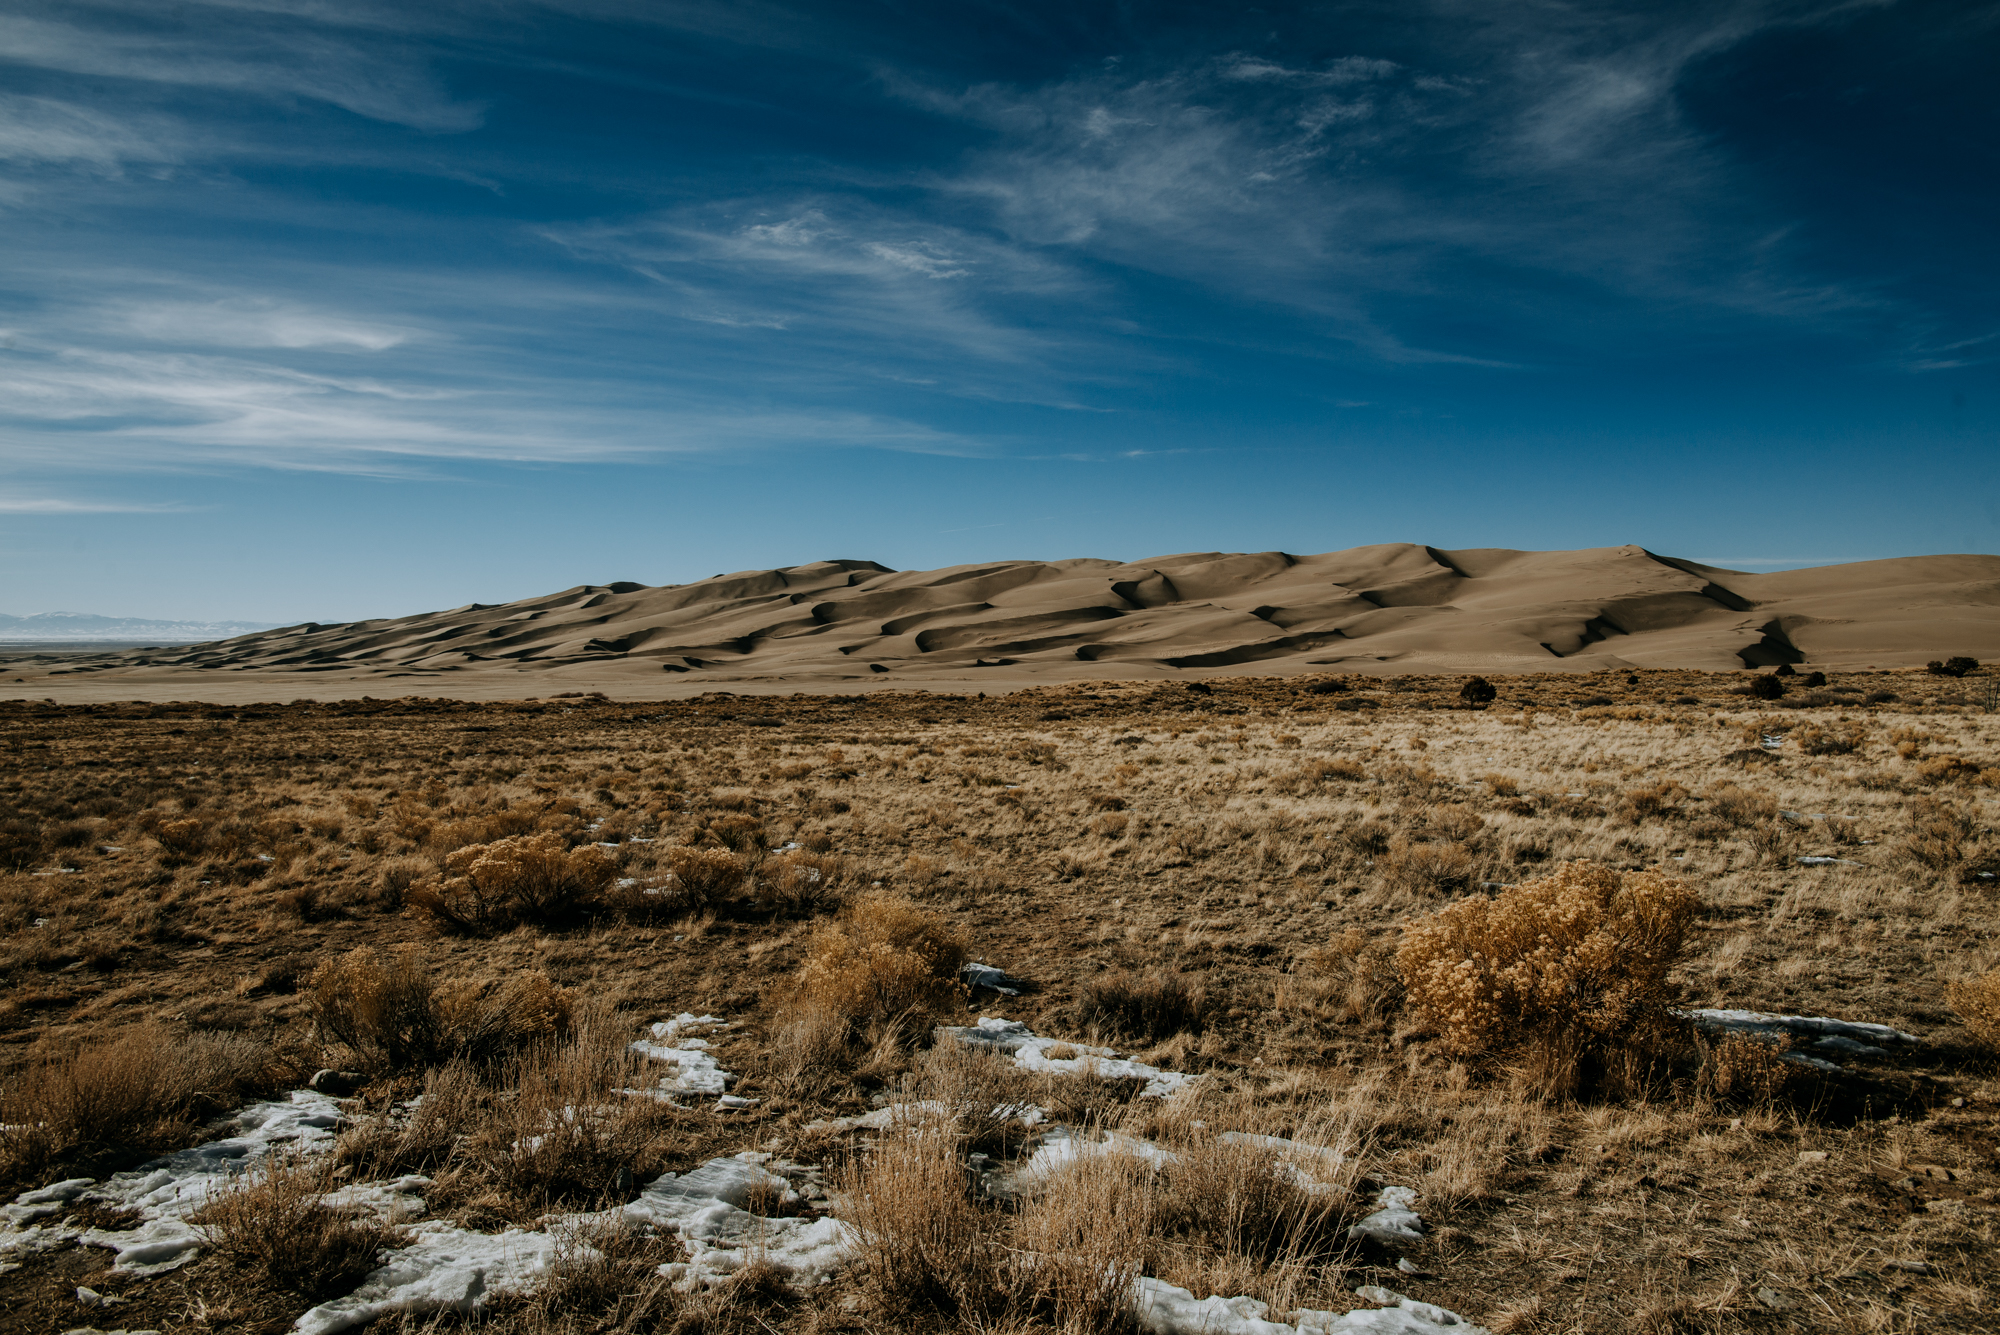 A photo of Great Sand Dunes National Park in winter.